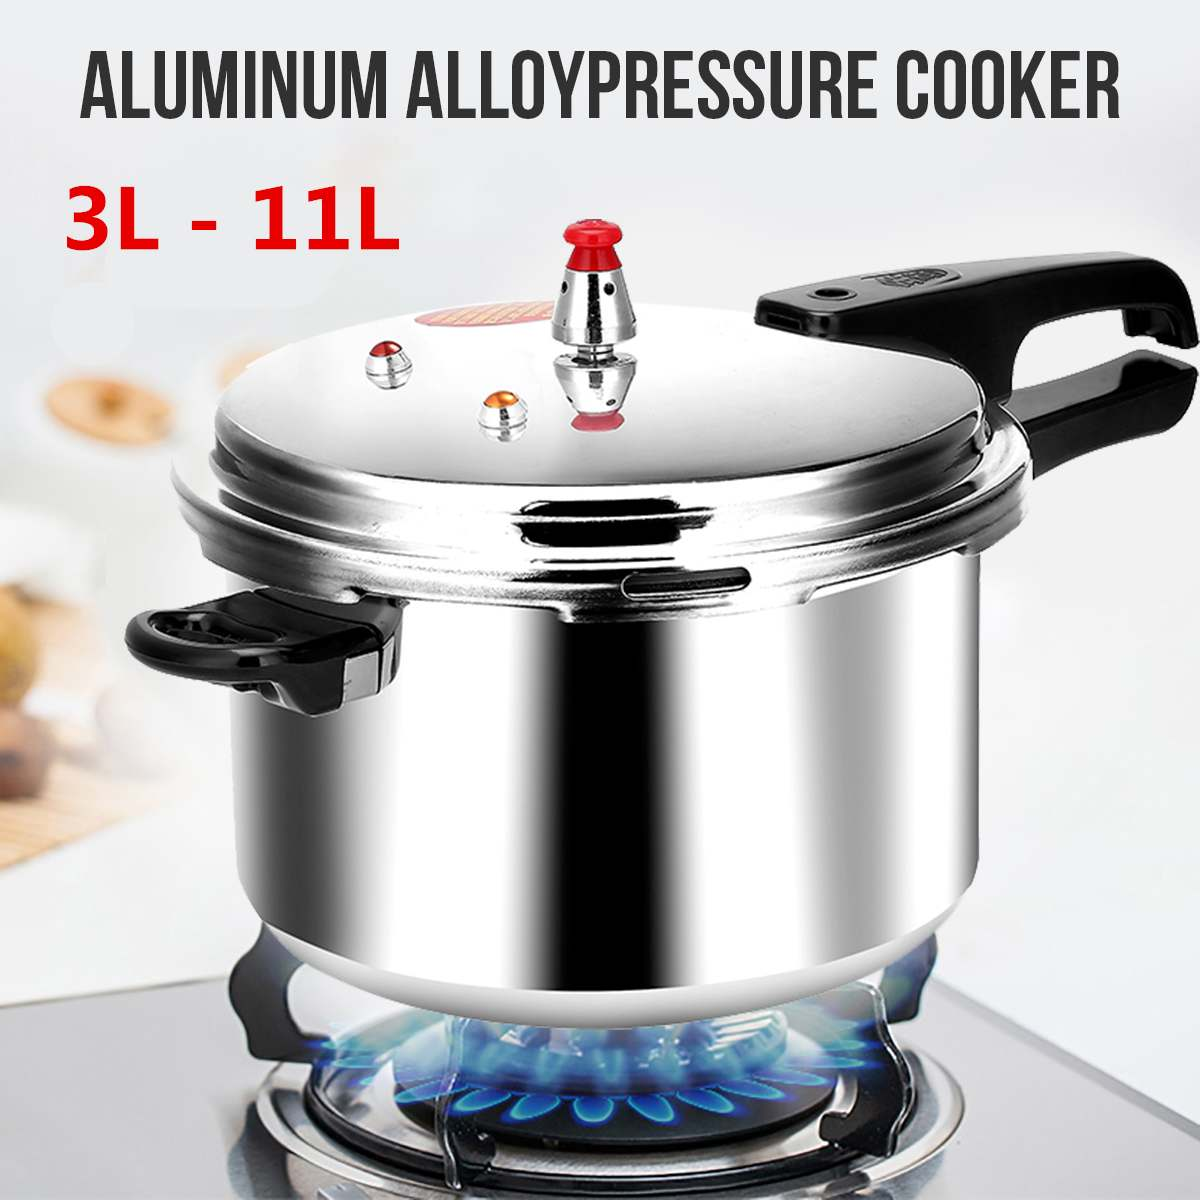 18/20/22/28cm Kitchen Pressure Cooker Electric Stove Gas Stove Energy-saving Safety Cooking Utensils Outdoor Camping 3/4/5/11L 1